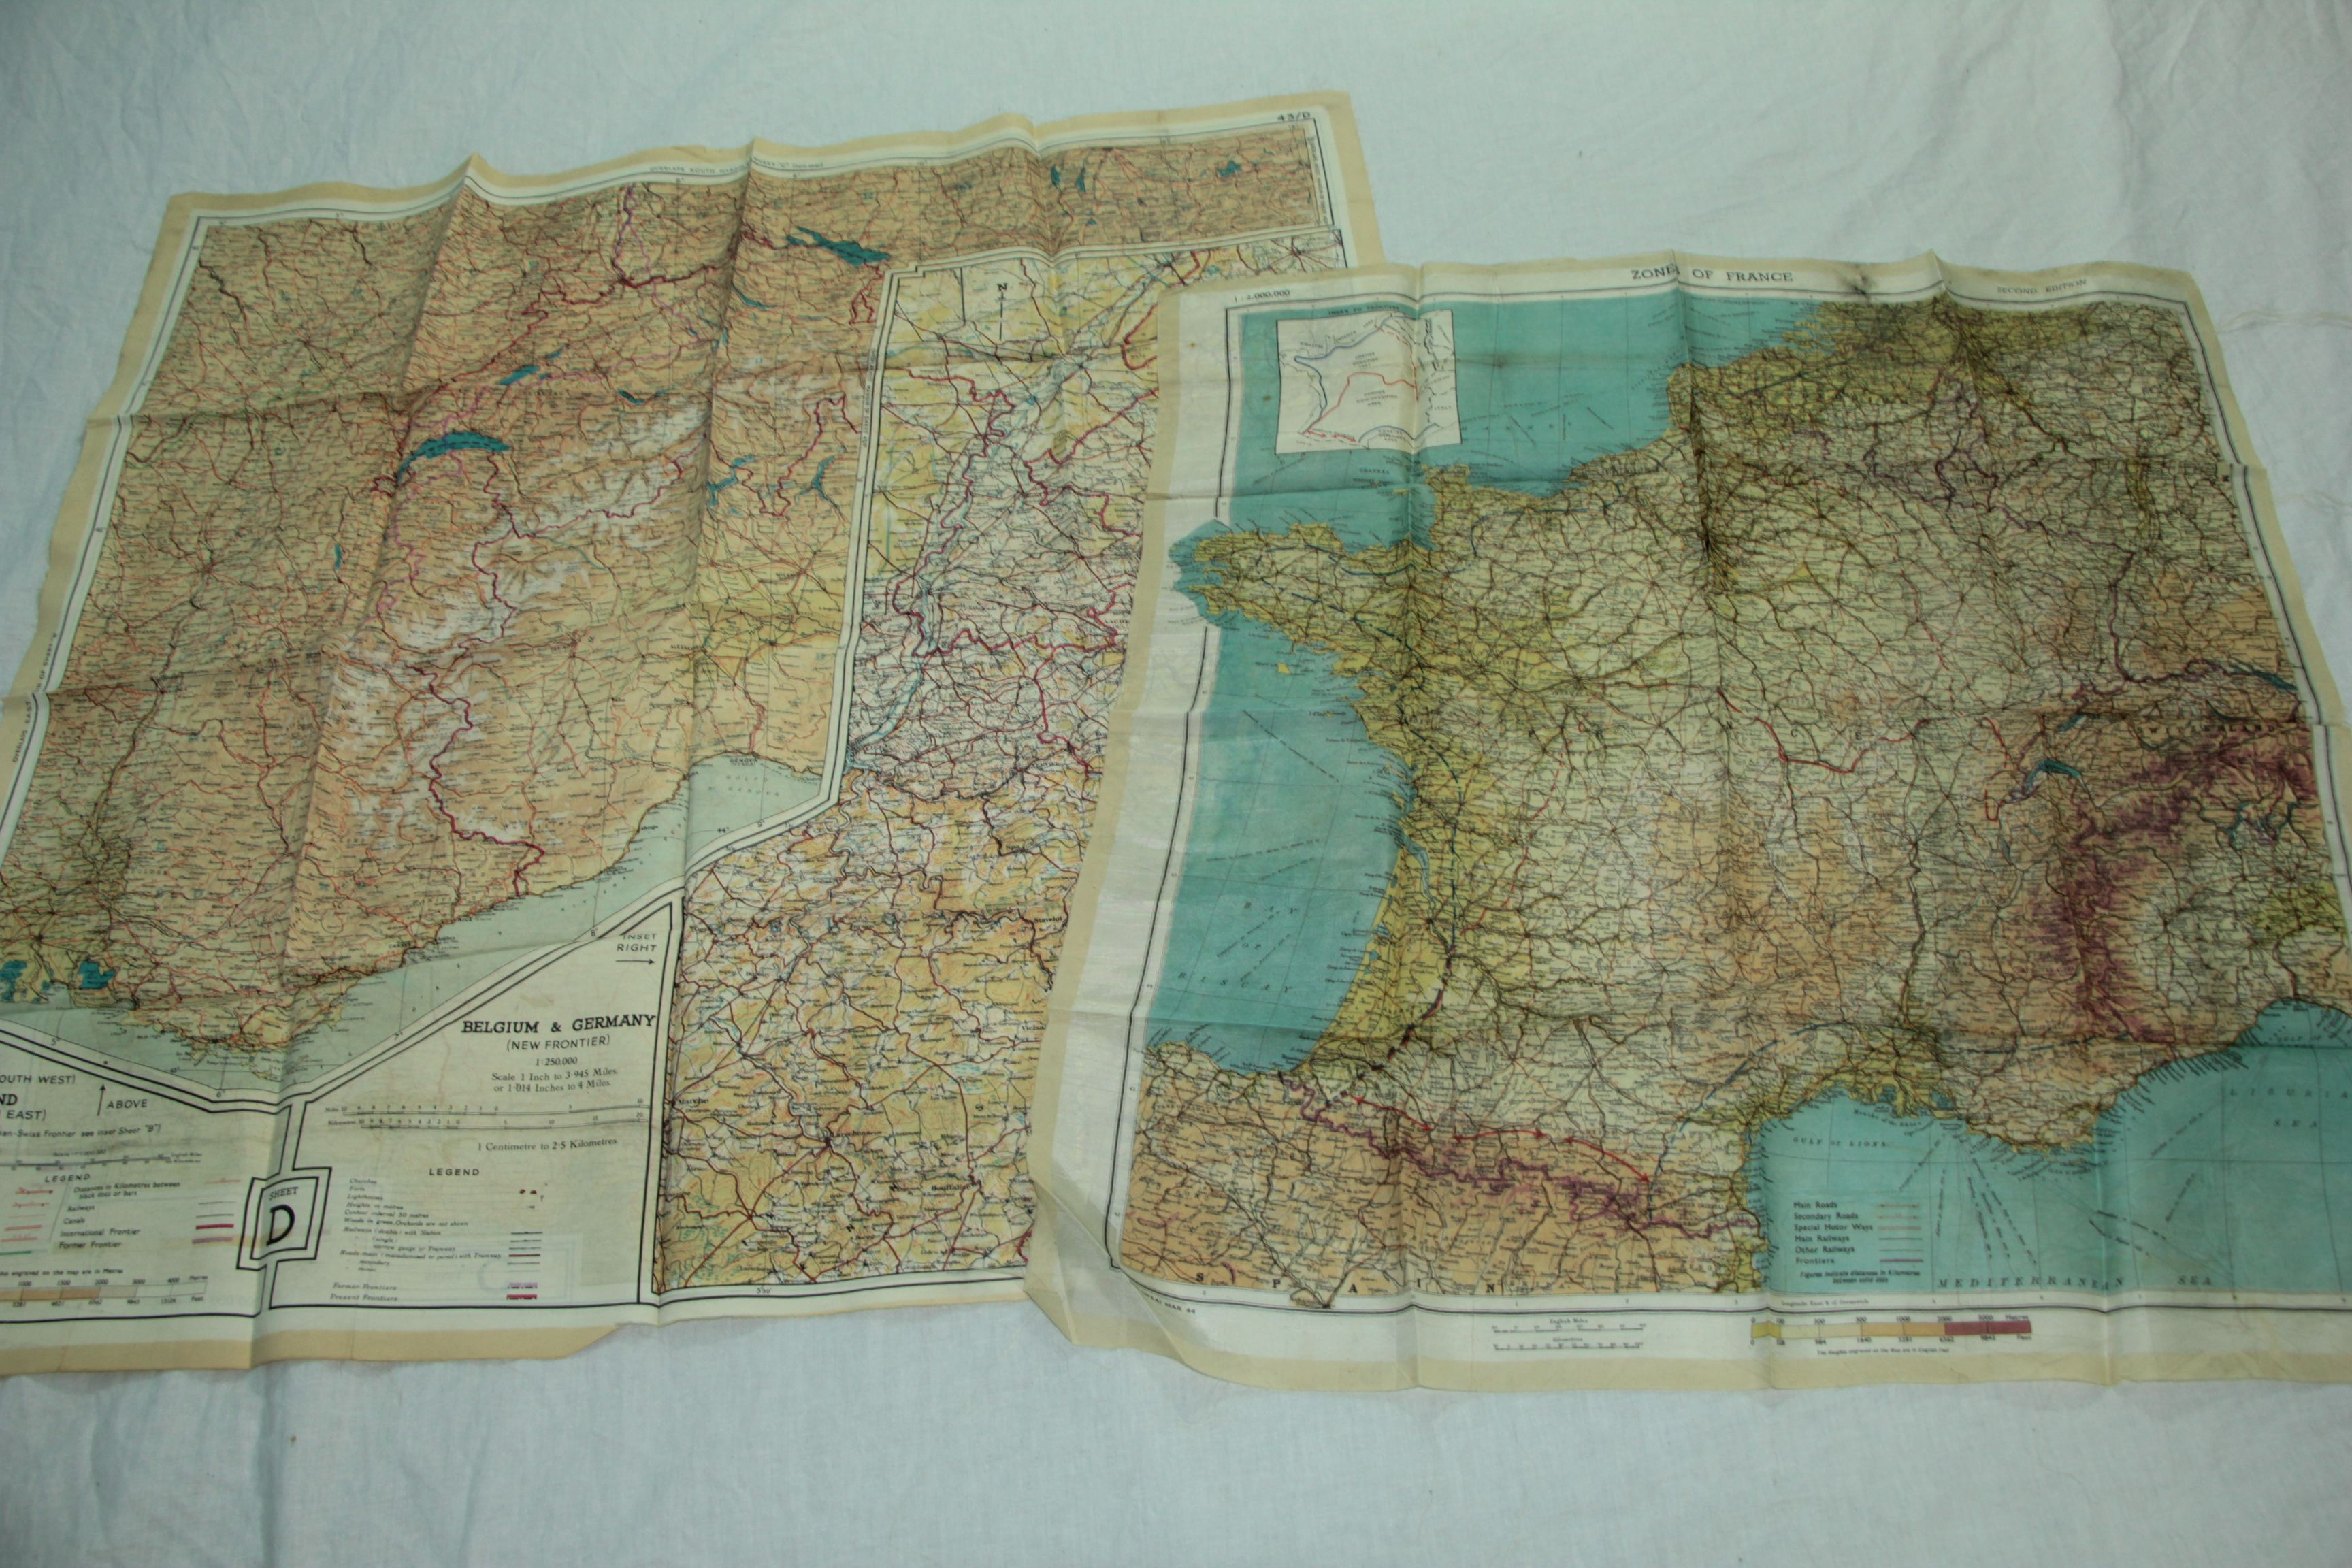 Map France 945.Invasion Maps Of Germany And France Printed On Silk The Army Used